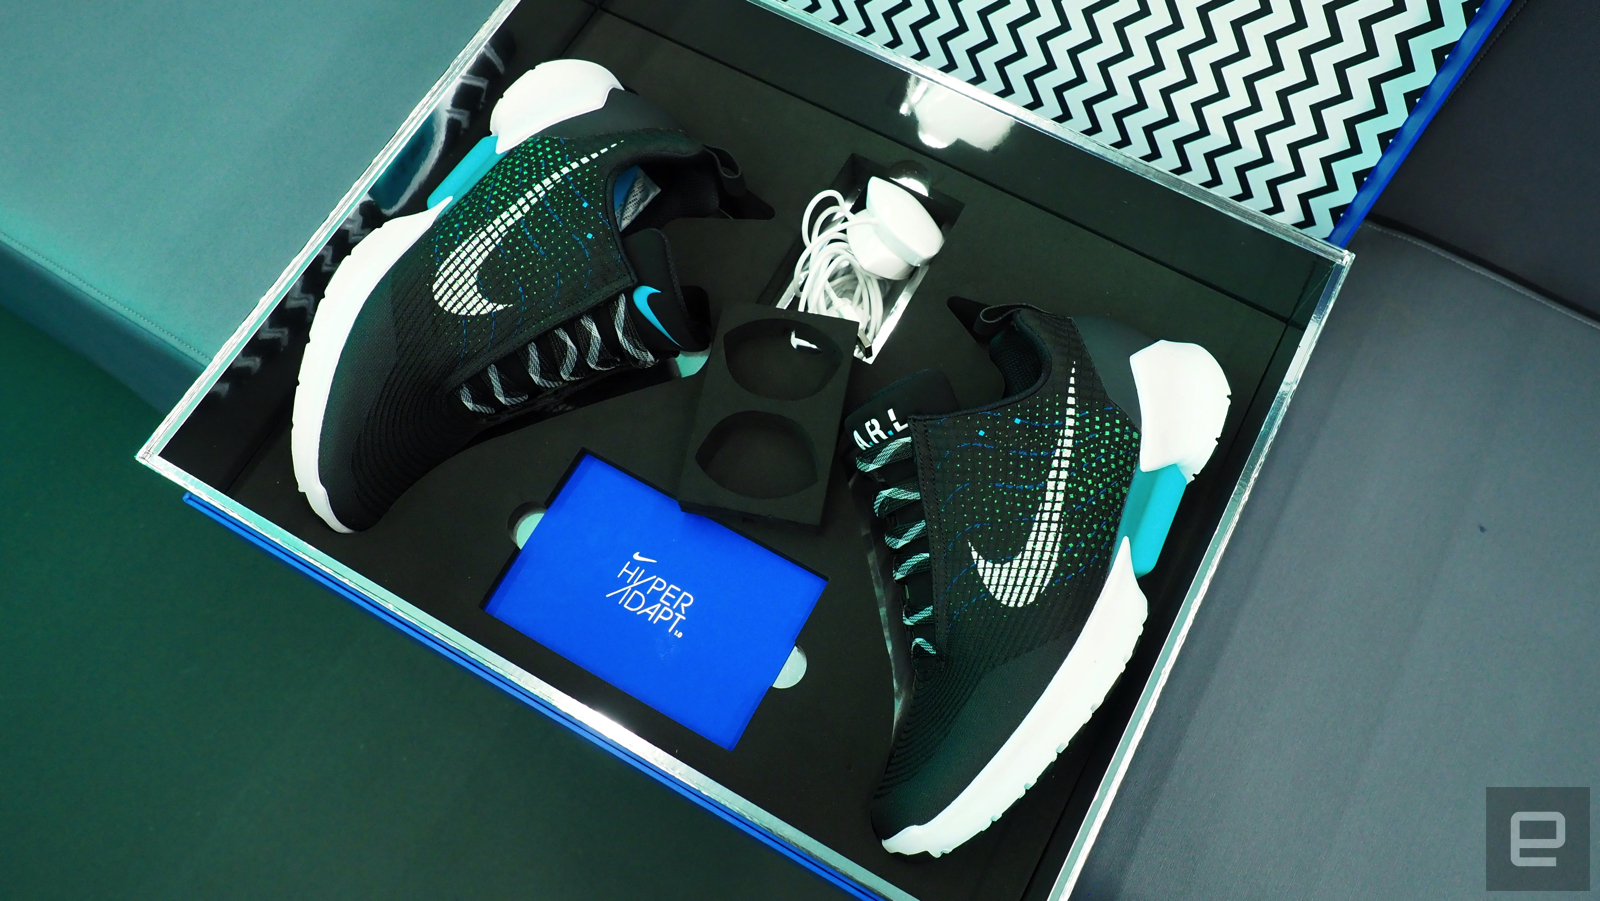 3db8742ca0c5 Nike designers on self-lacing shoes and the future of footwear